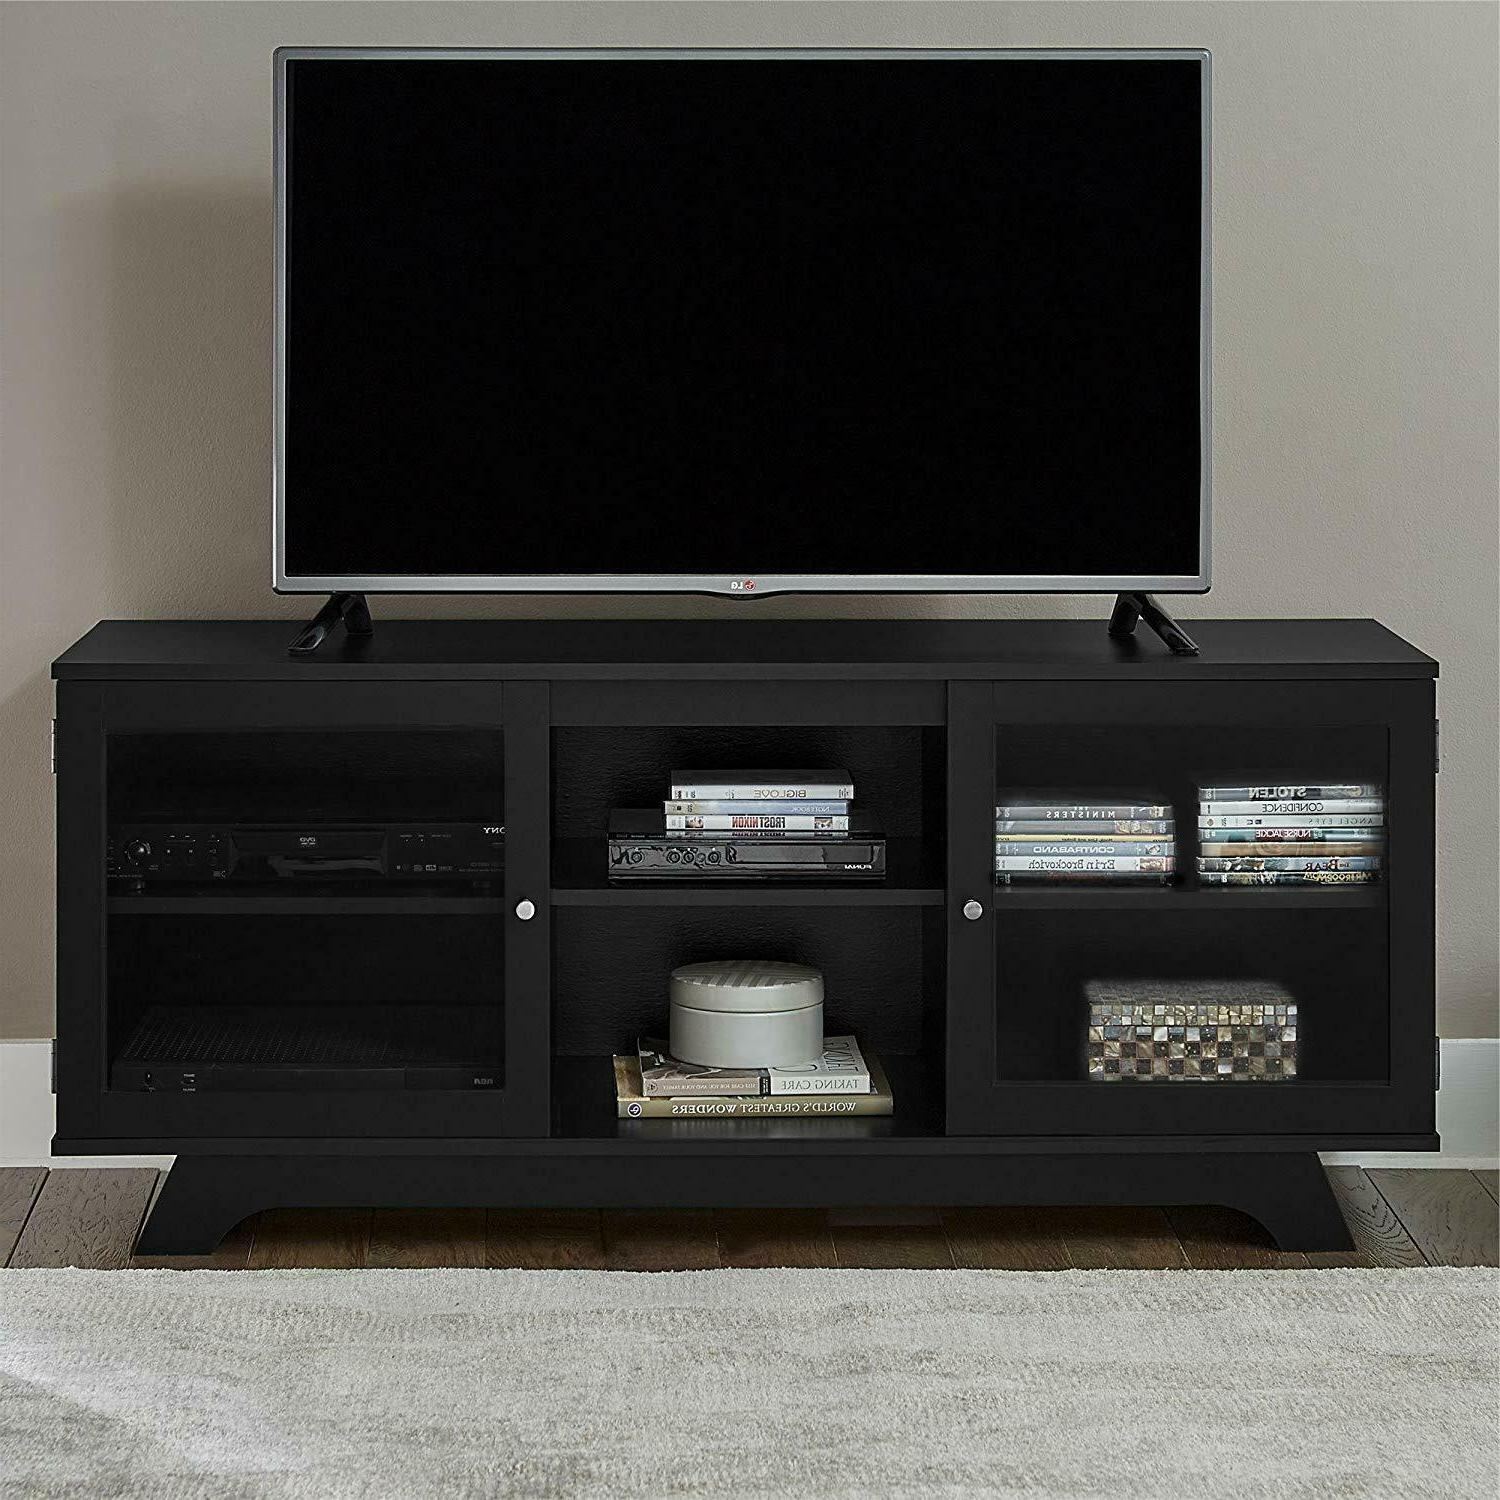 "Entertainment TV up to 55"" Console Flat 4K Organizer"